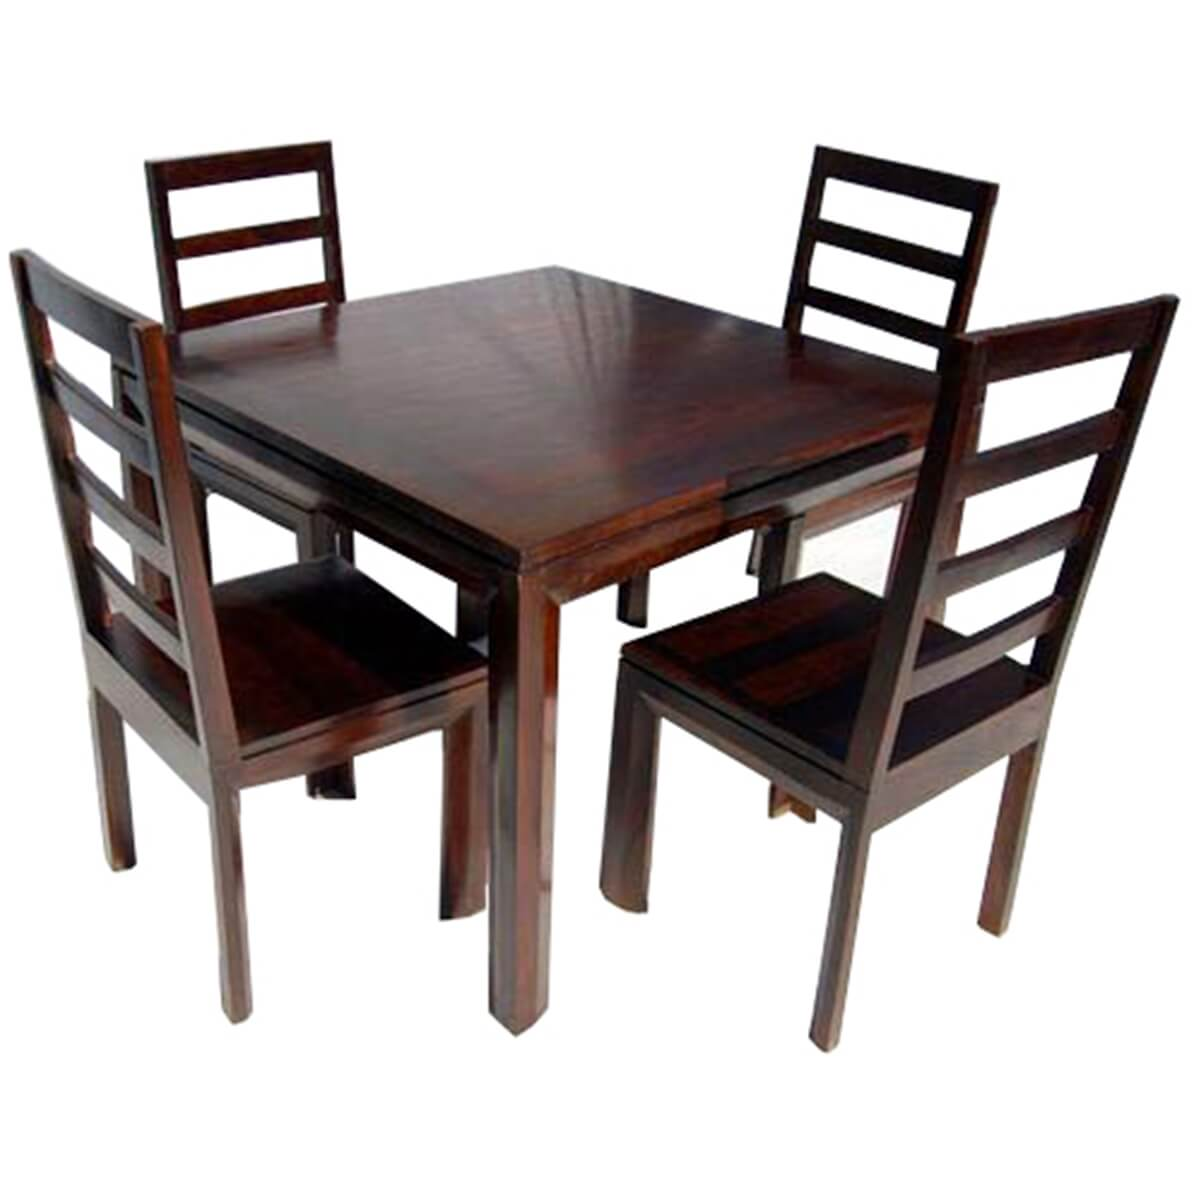 Solid Wood Dining Table Chairs: Solid Wood Transitional Dining Table And Chairs Set